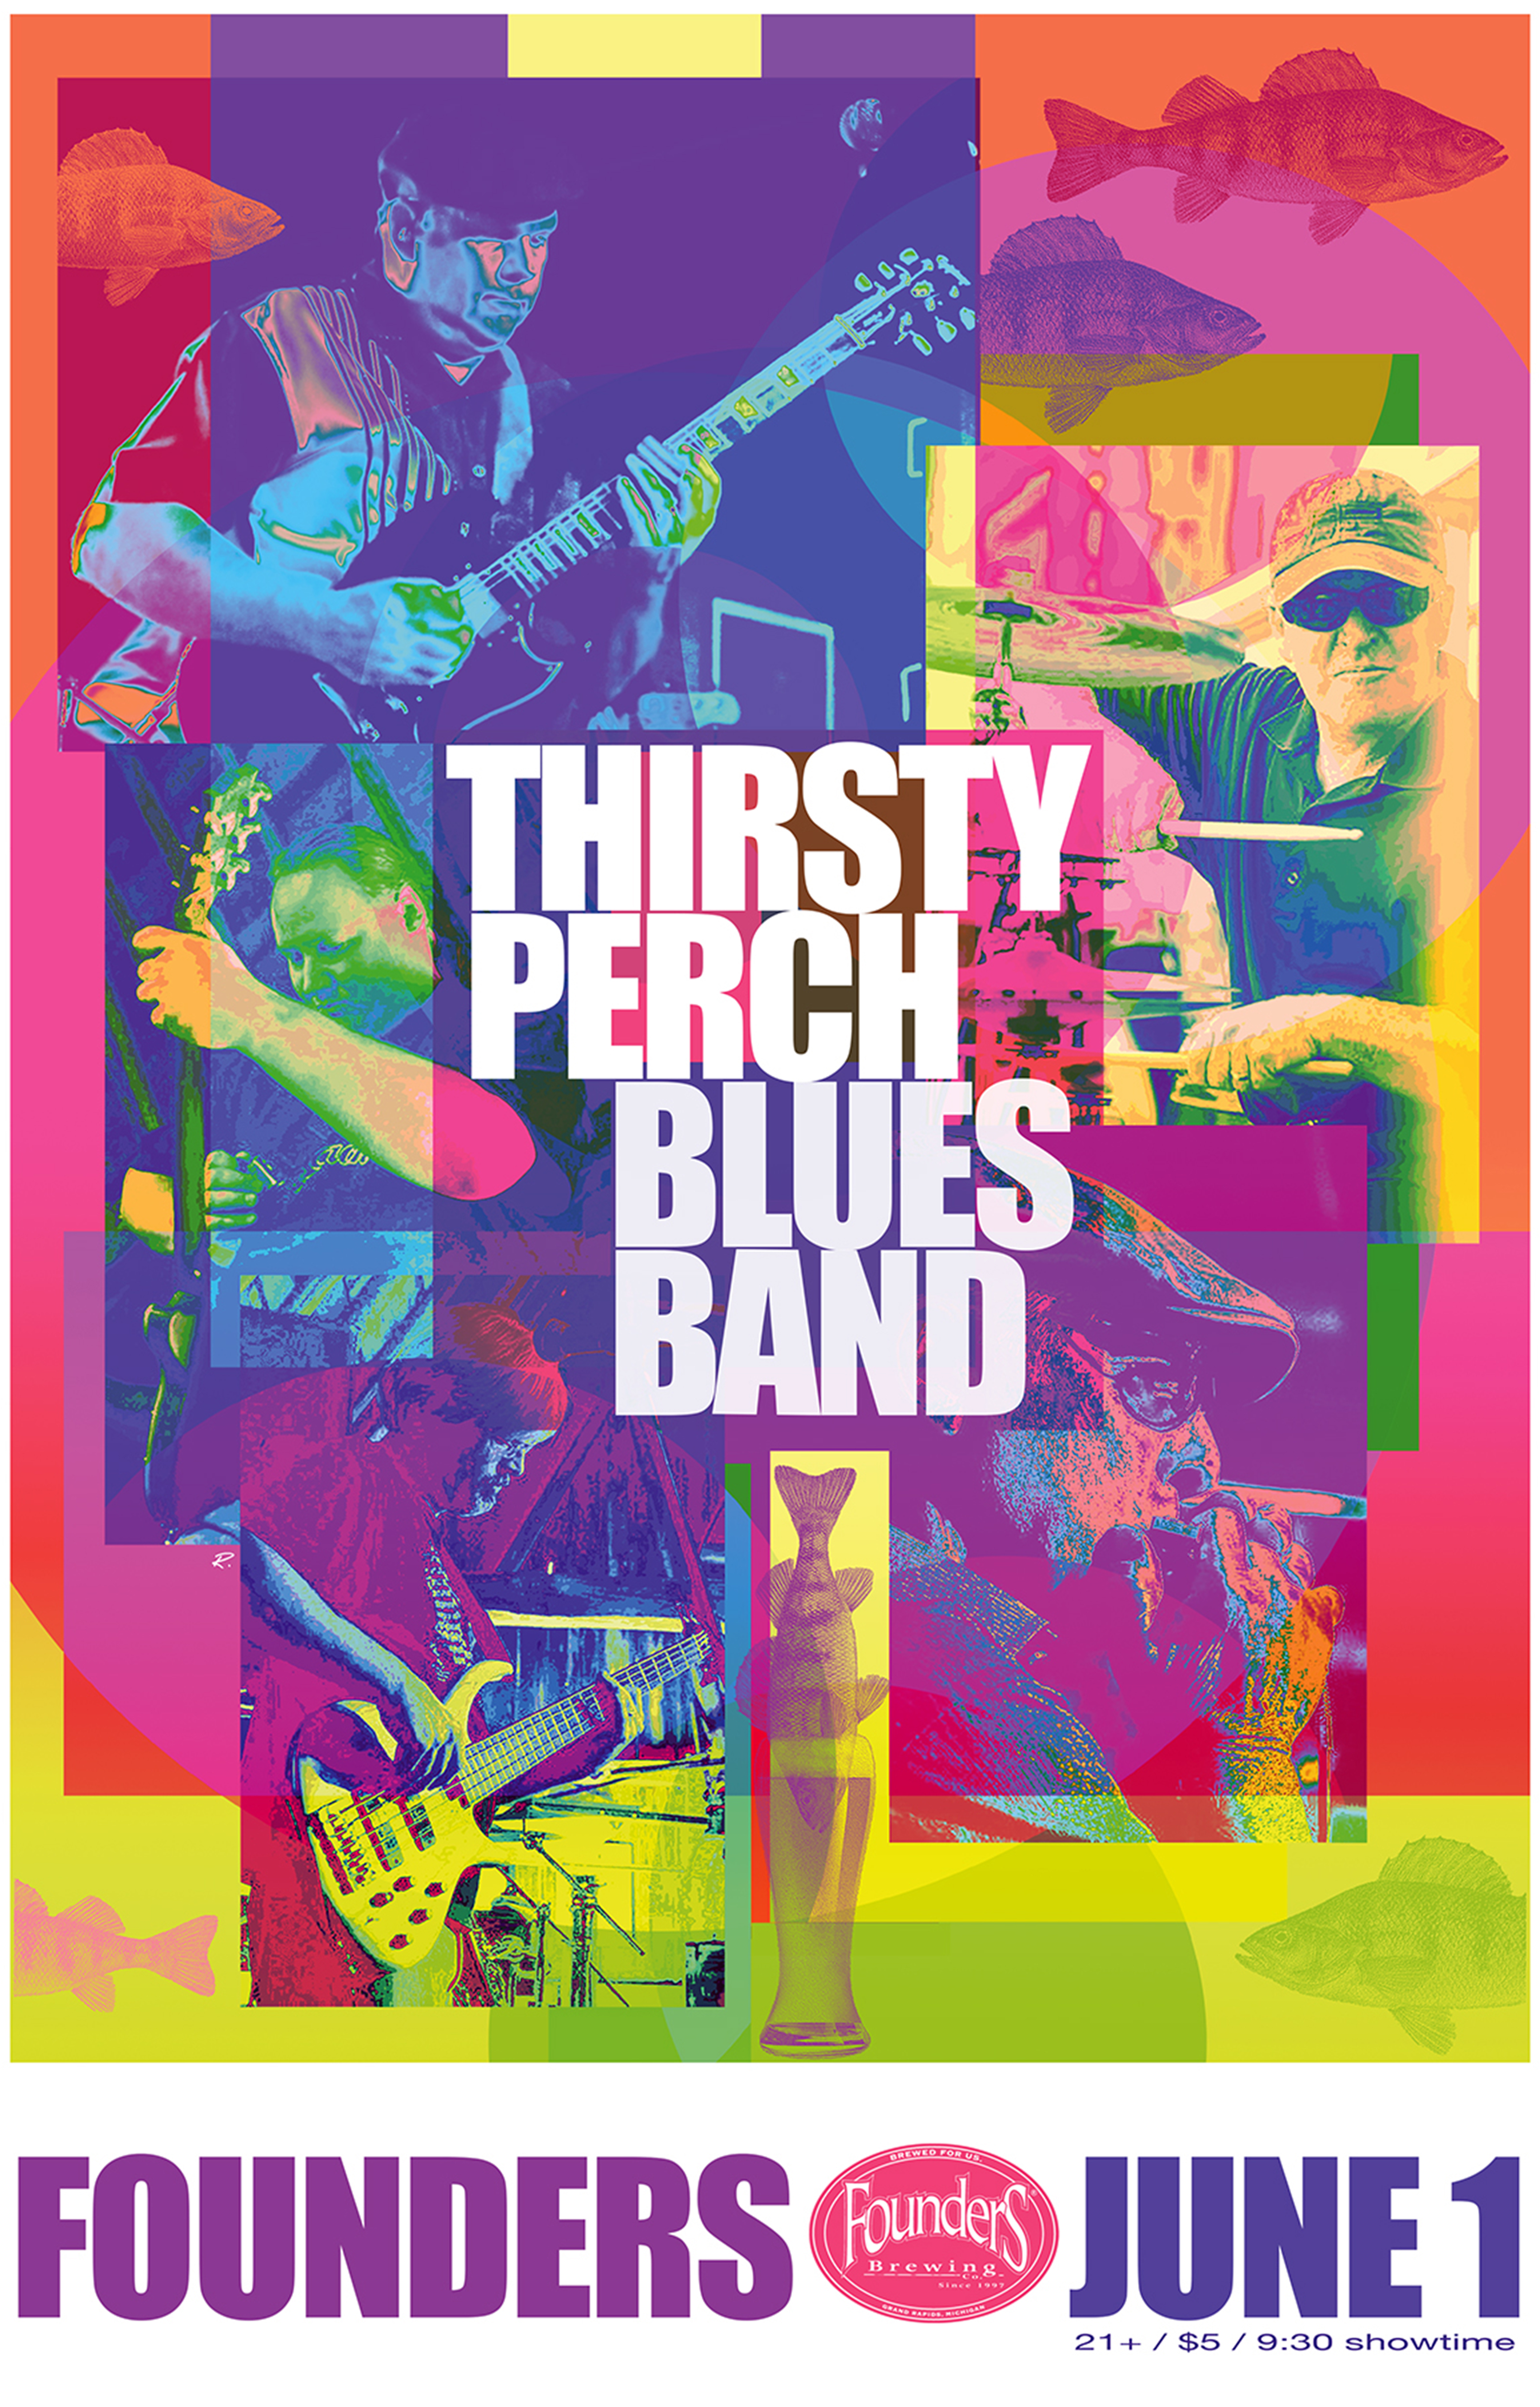 Thirsty Perch Blues Band event poster